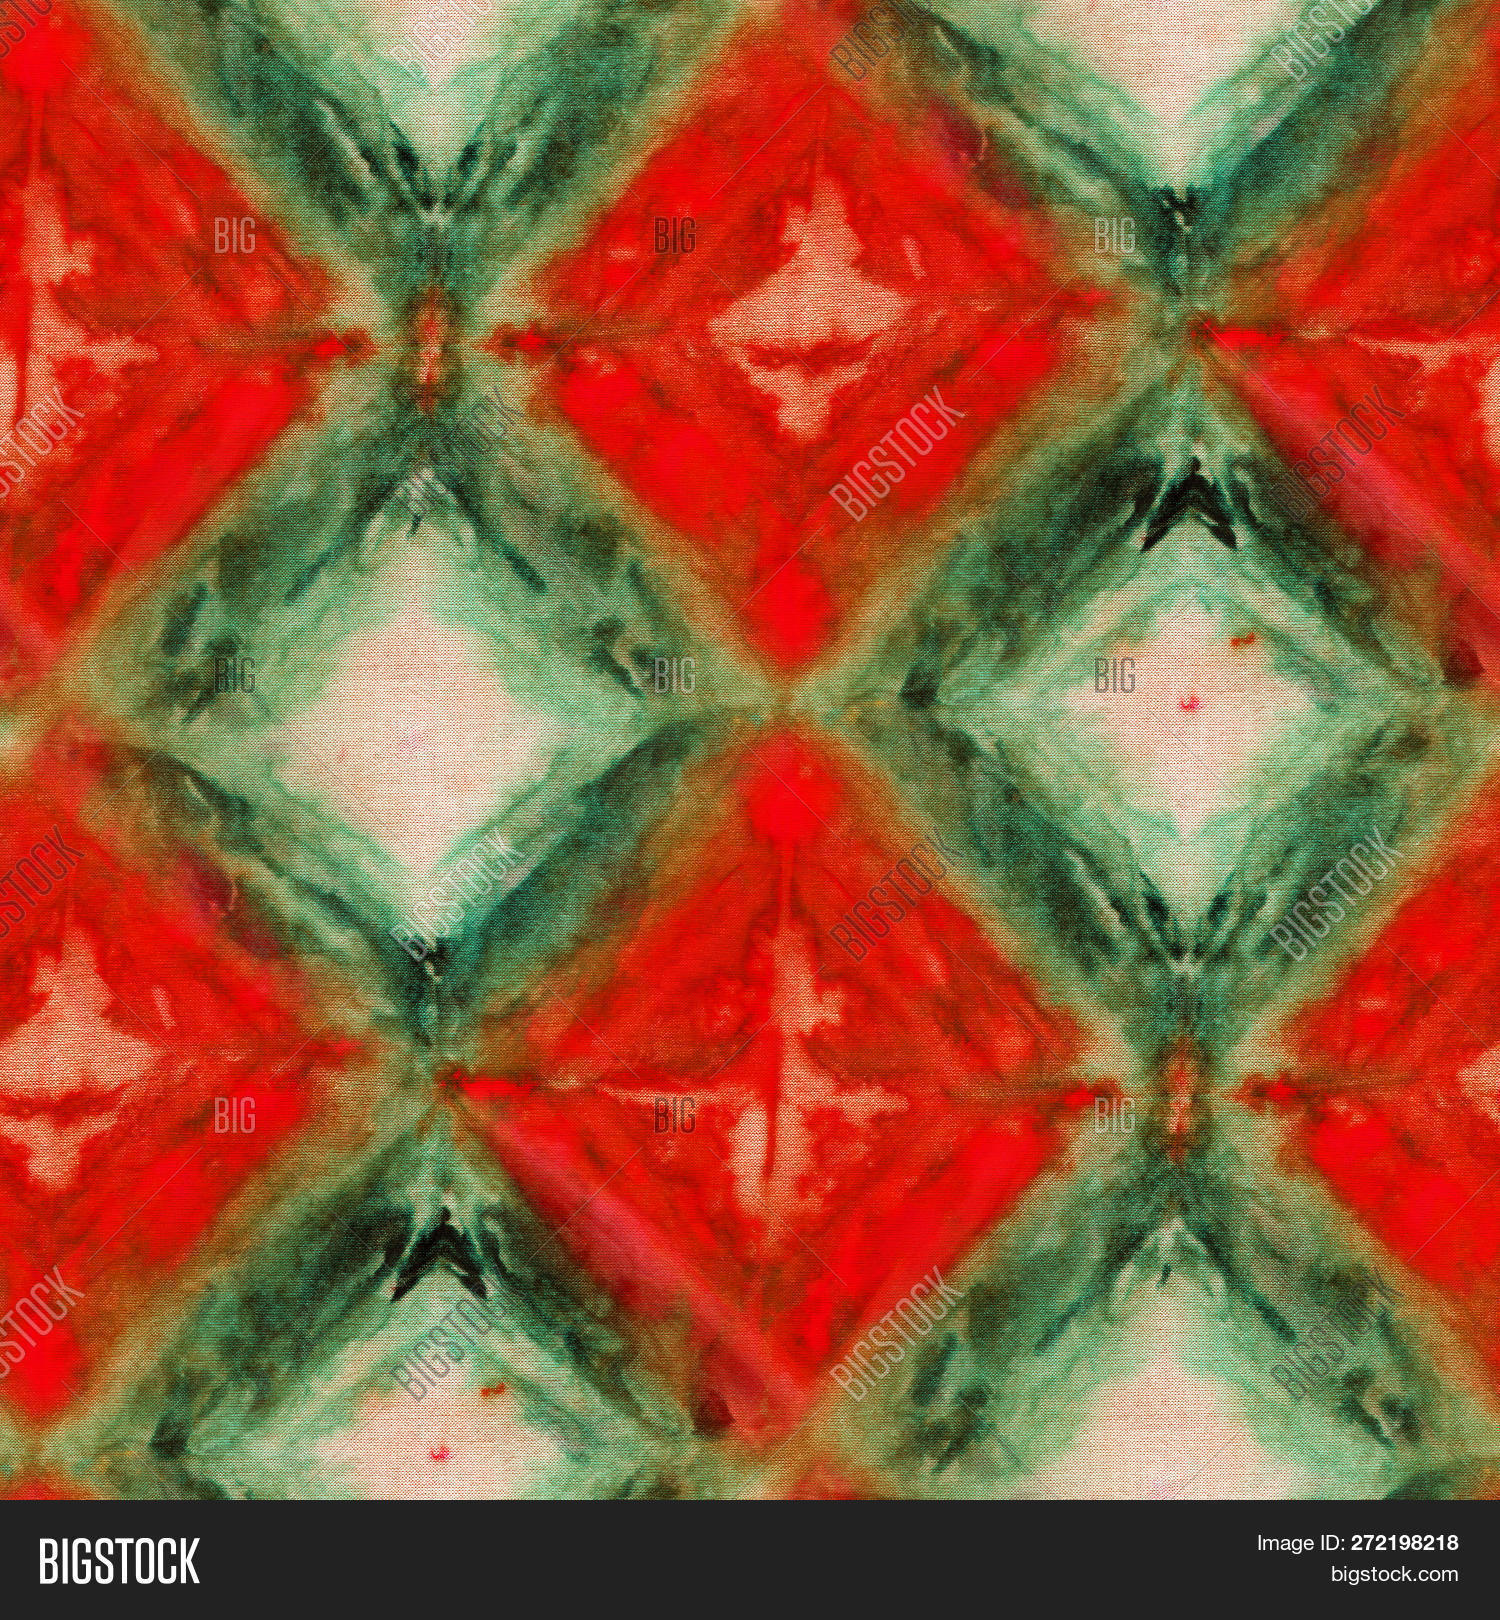 cb5594d34b97 Seamless tie-dye pattern of green and red color on white silk. Hand  painting fabrics - nodular batik. Shibori dyeing.8